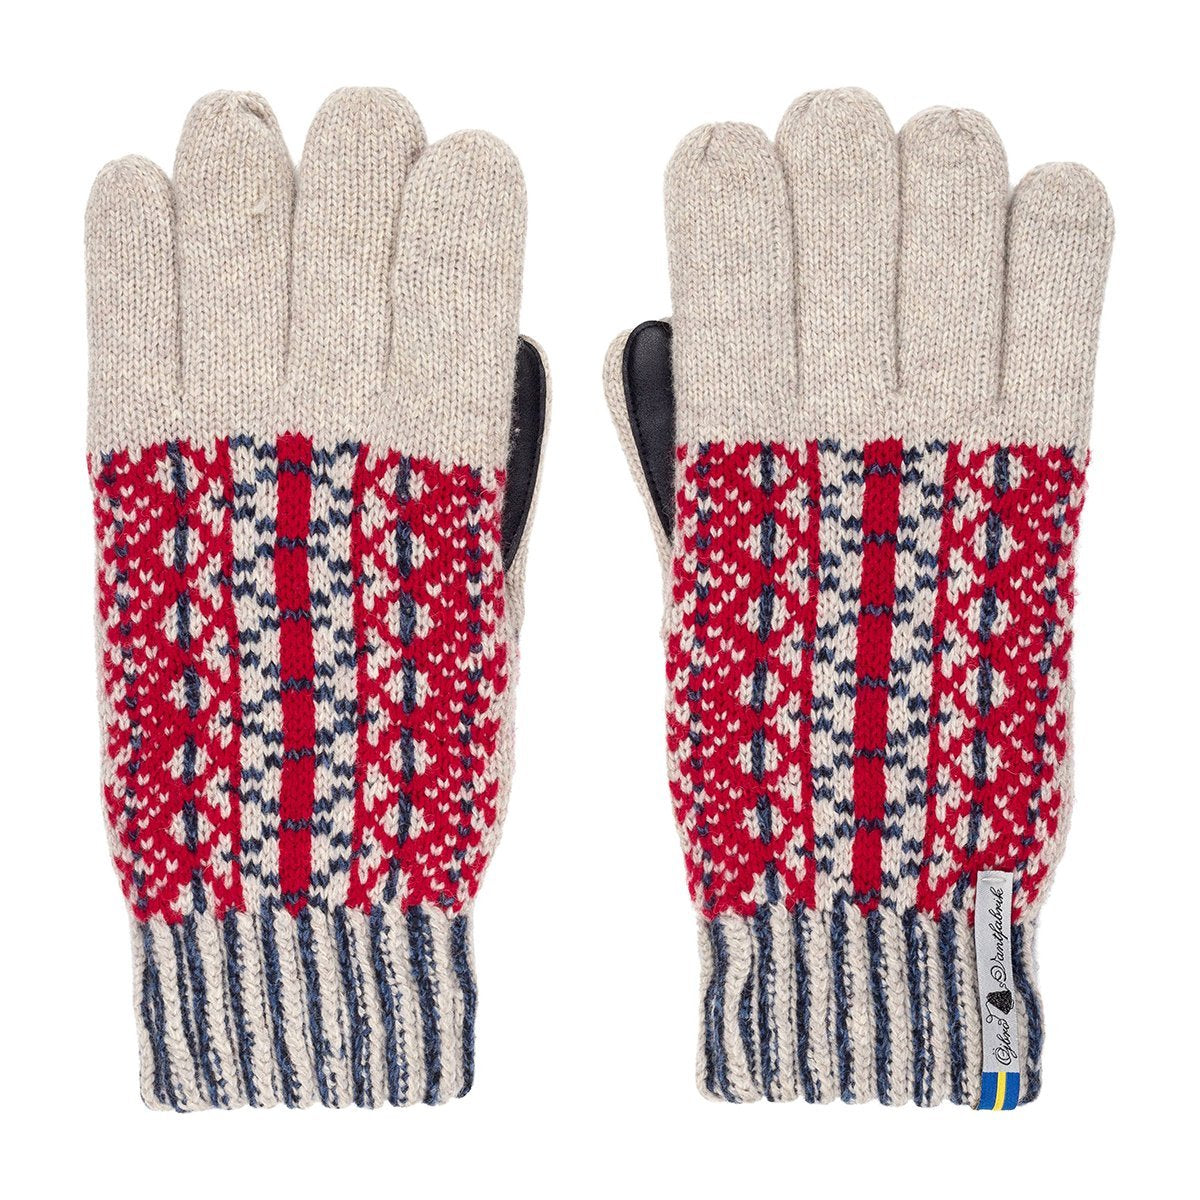 Lycksele Gloves